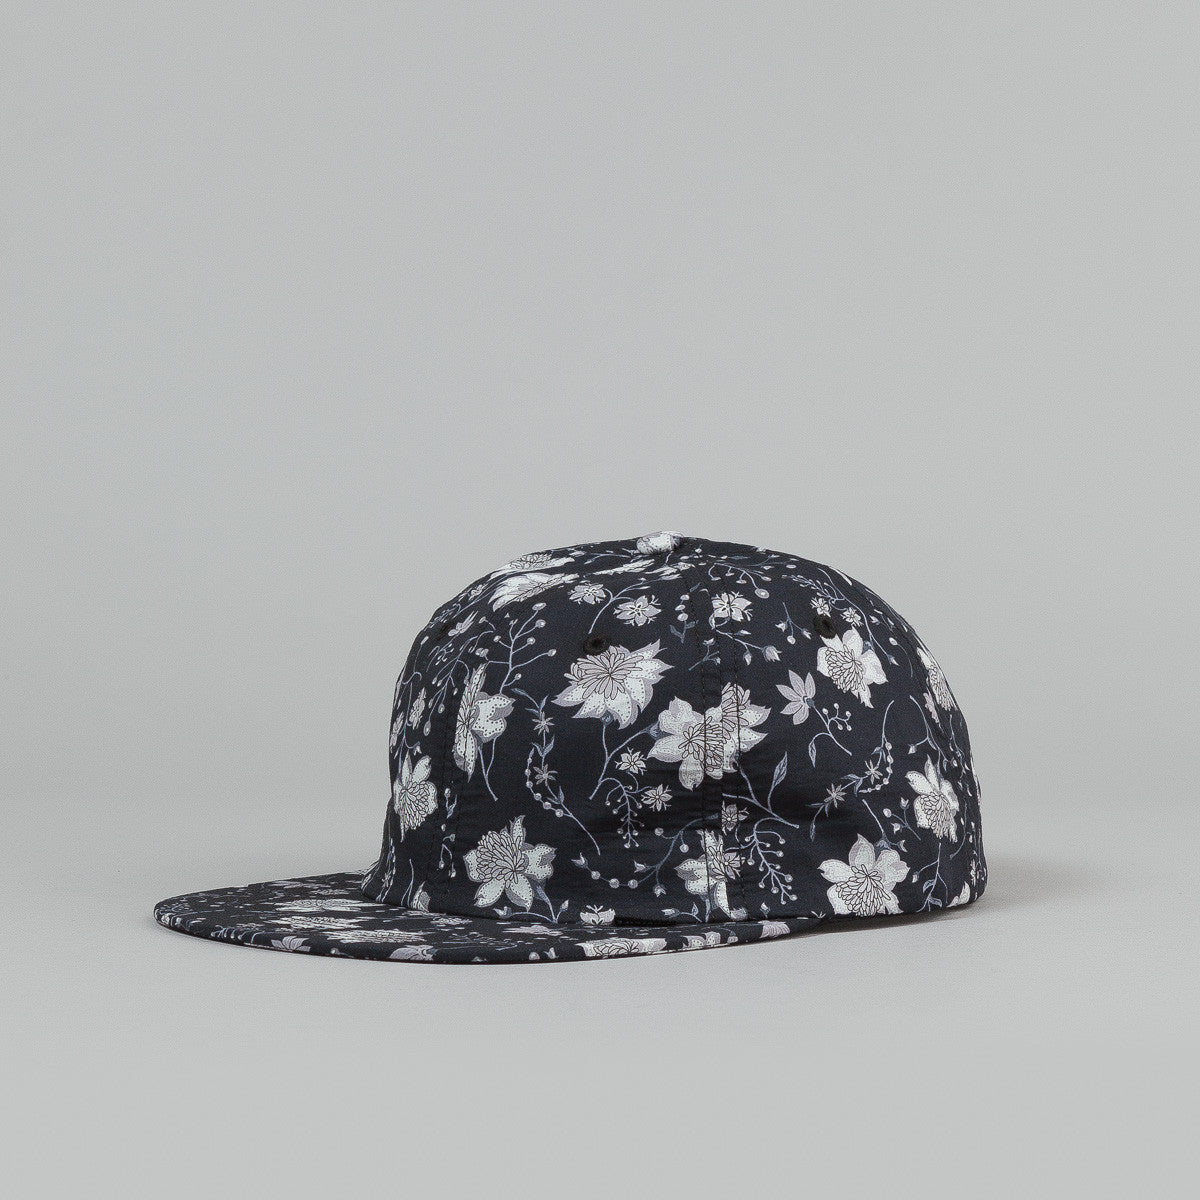 The Quiet Life Nikita Polo Cap